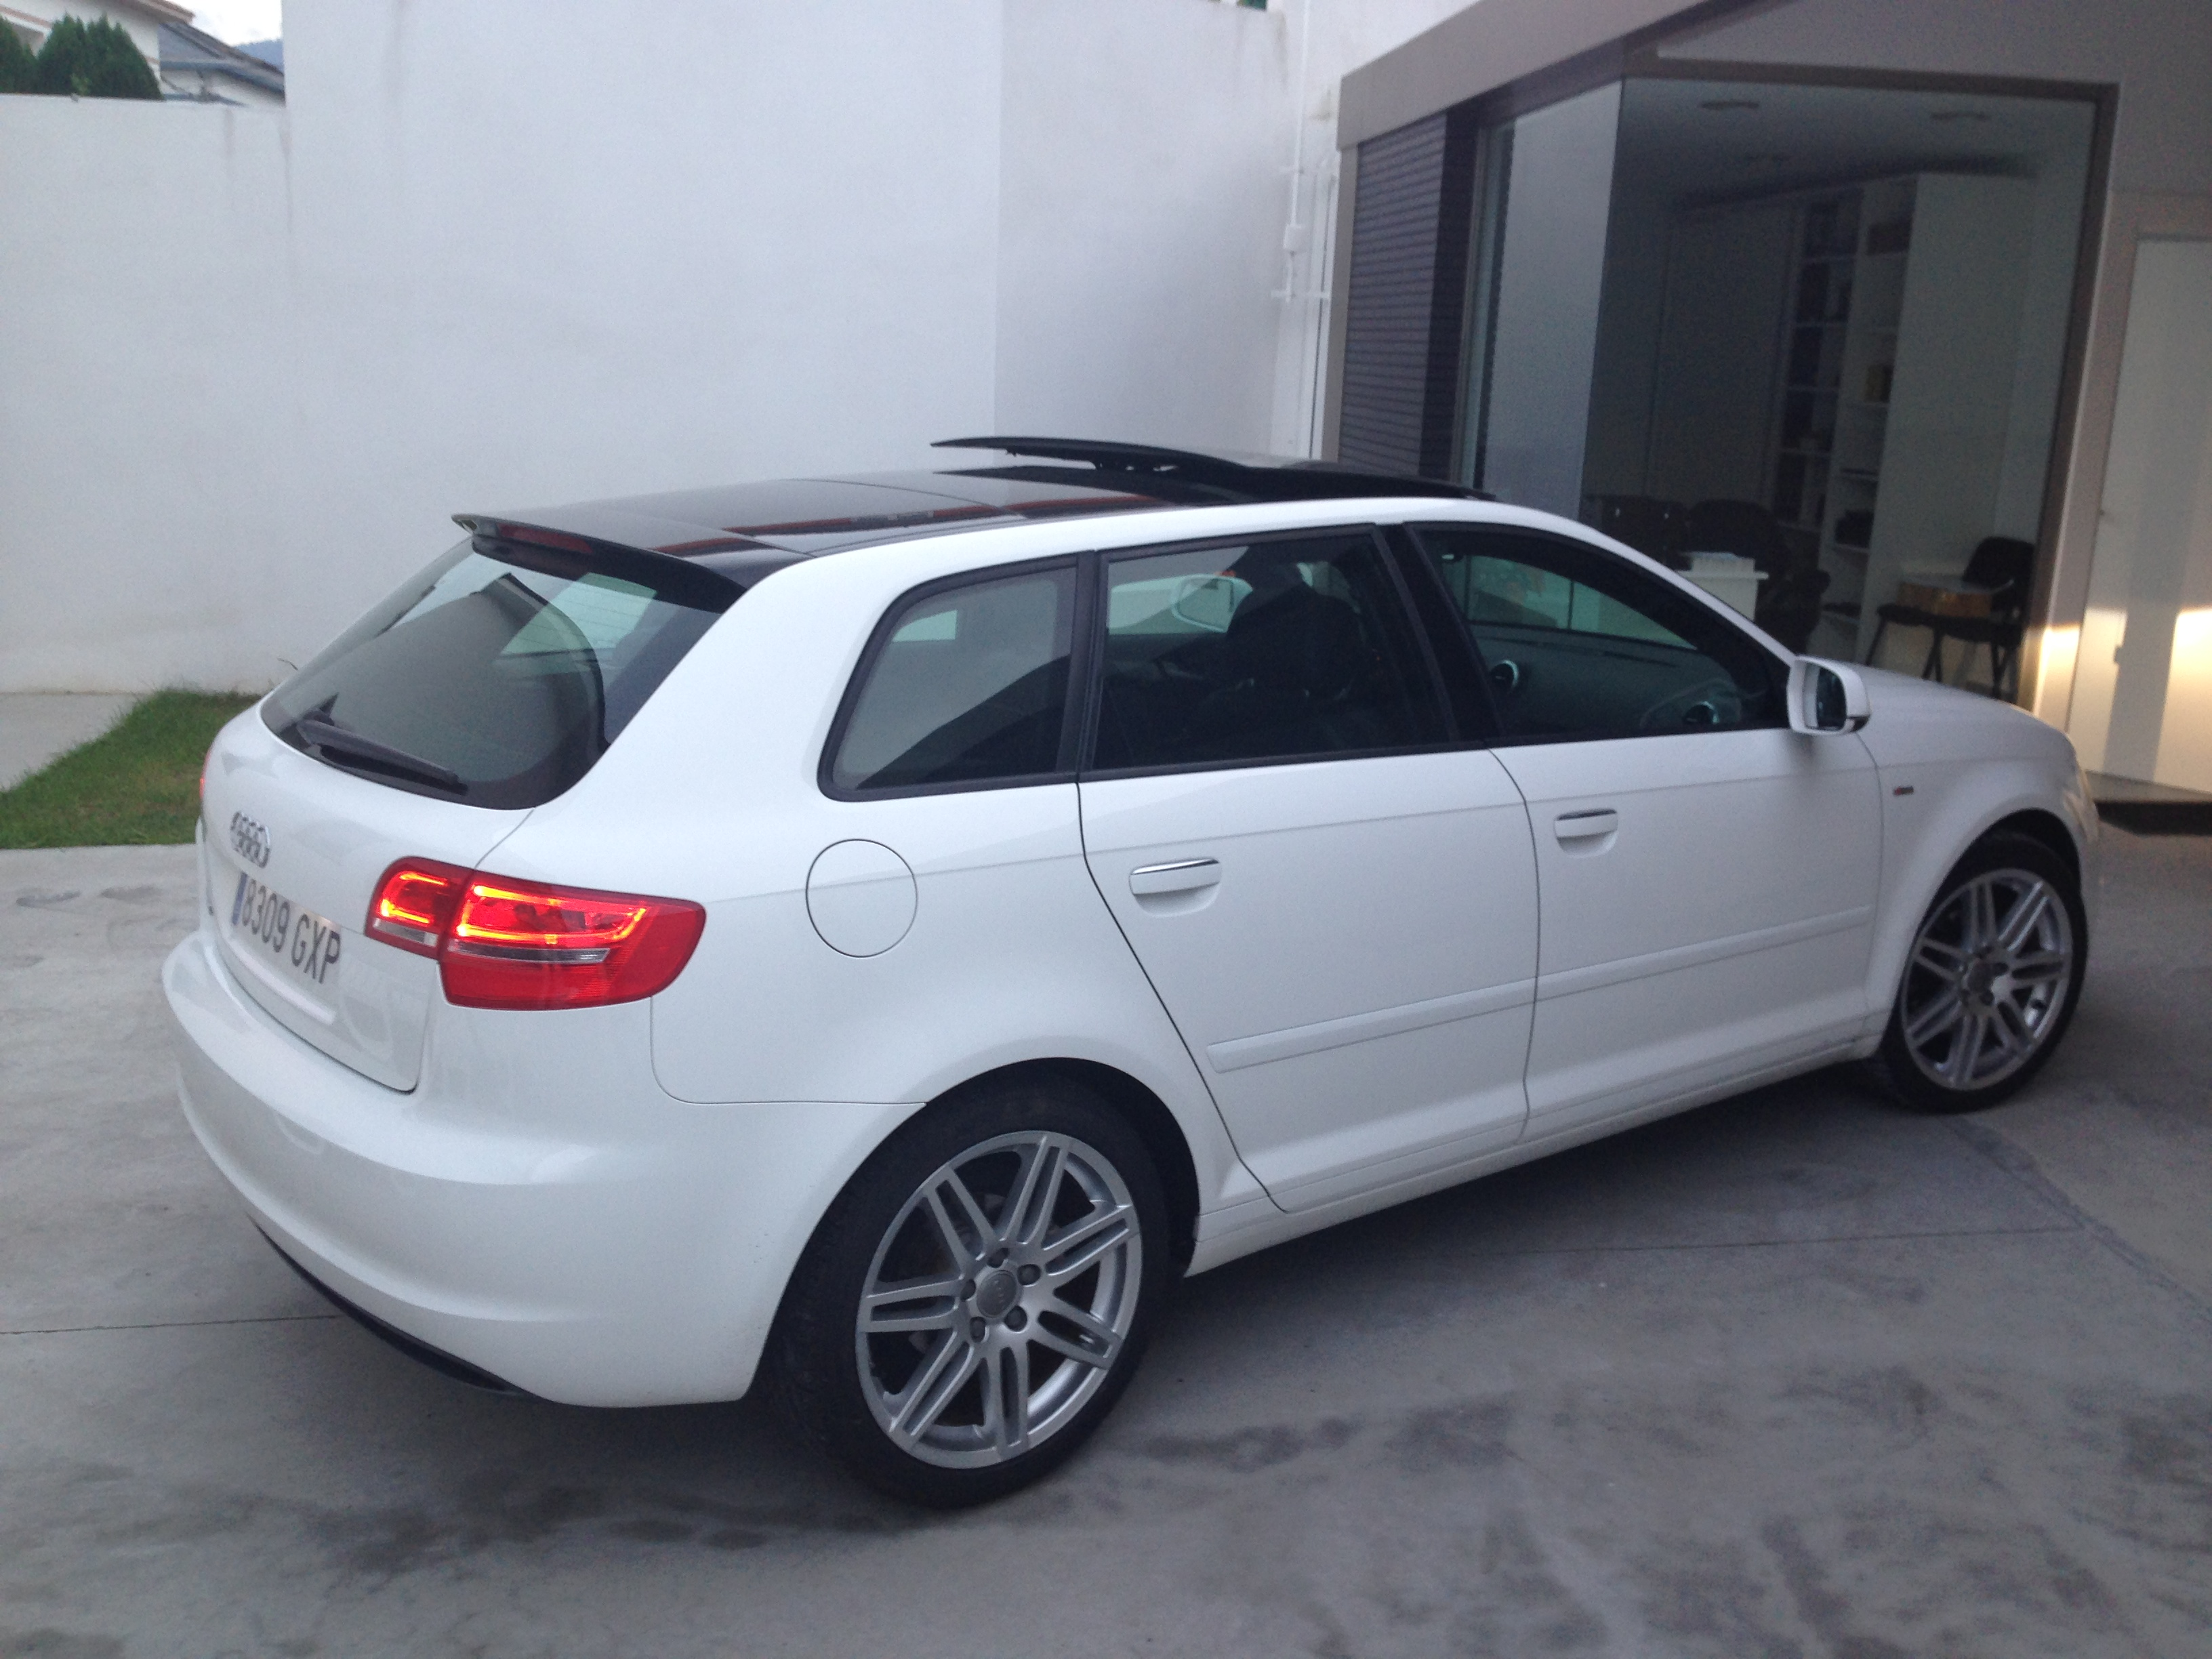 audi a3 sportback 2 0 tdi 140cv s line vsauto. Black Bedroom Furniture Sets. Home Design Ideas